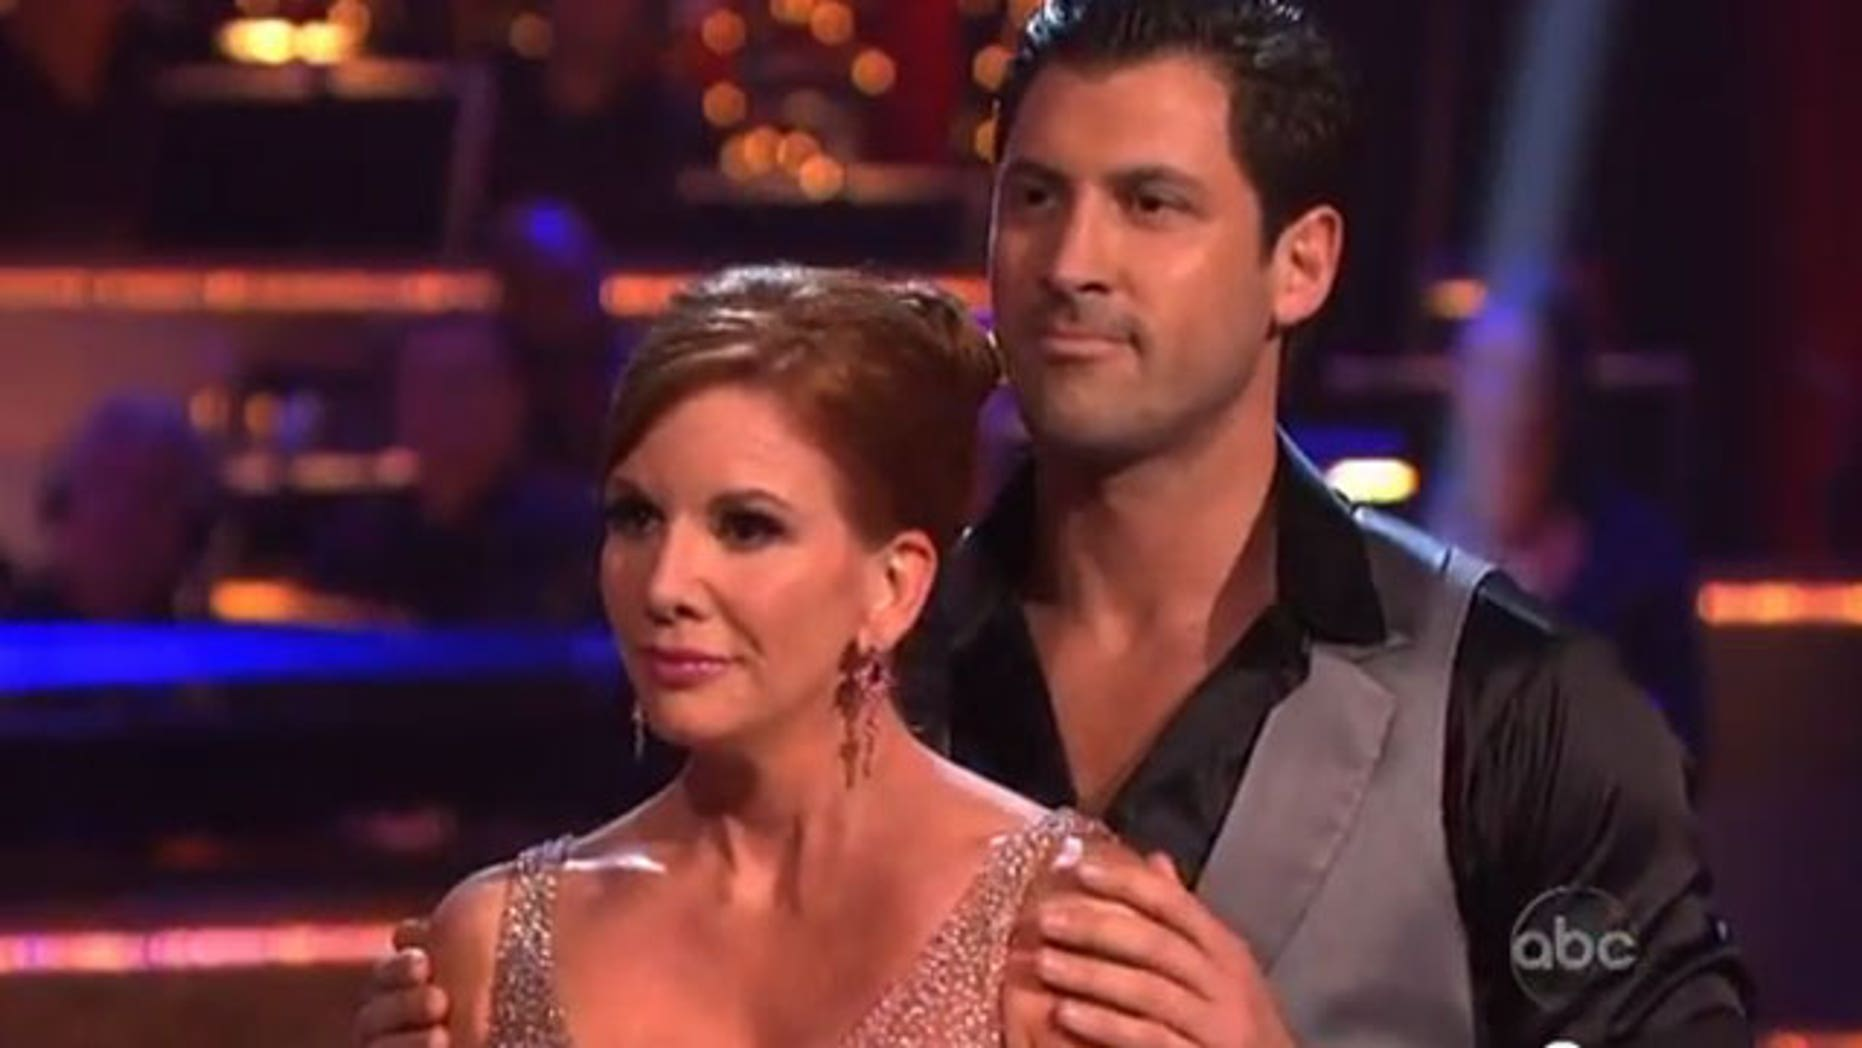 Melissa and Maks on 'Dancing With the Stars' (ABC)